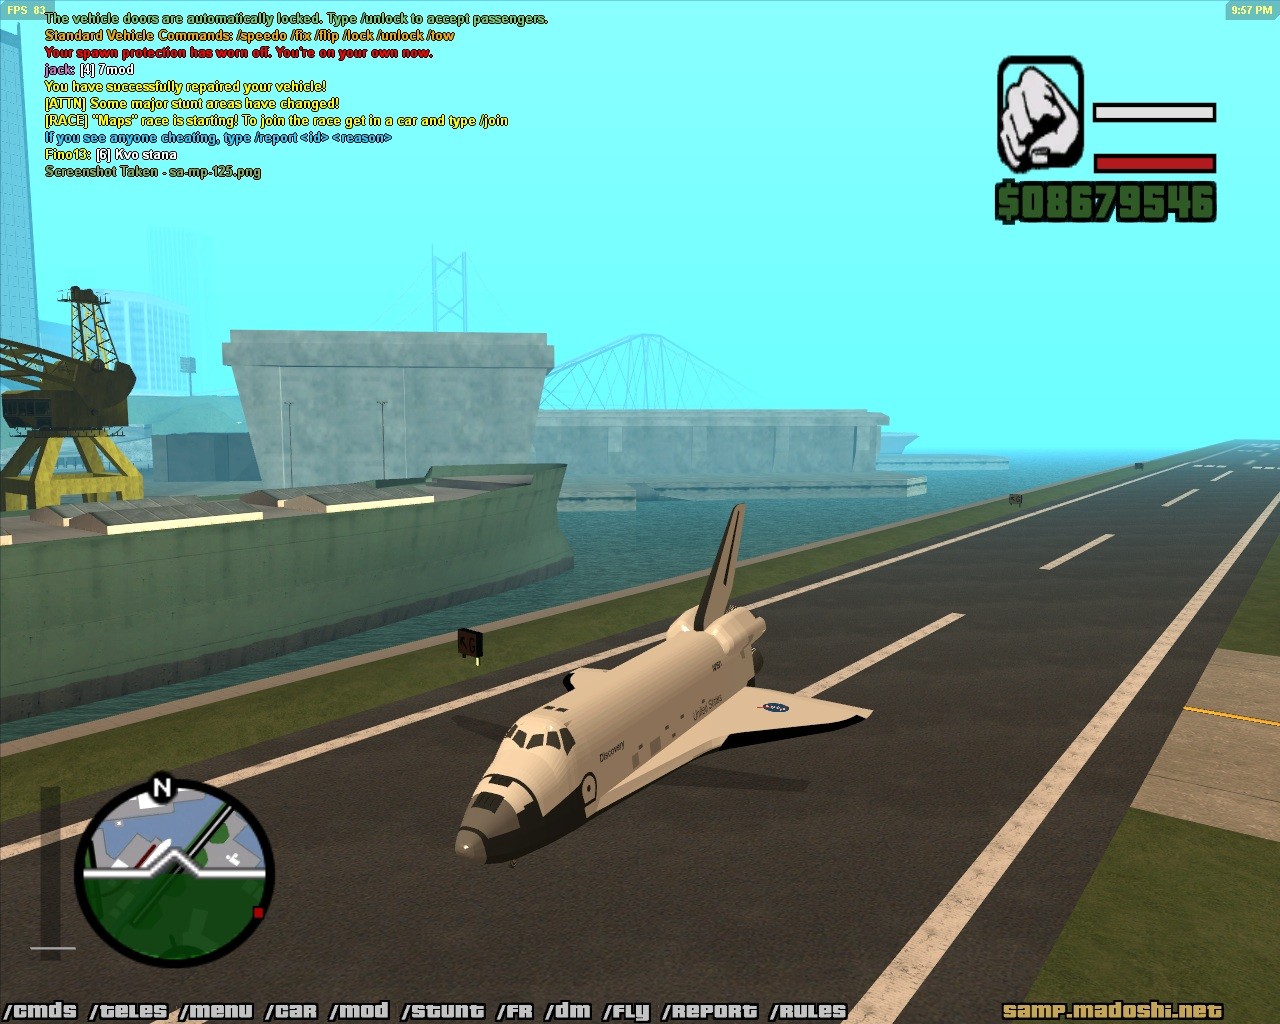 gta 5 space shuttle mission - photo #5